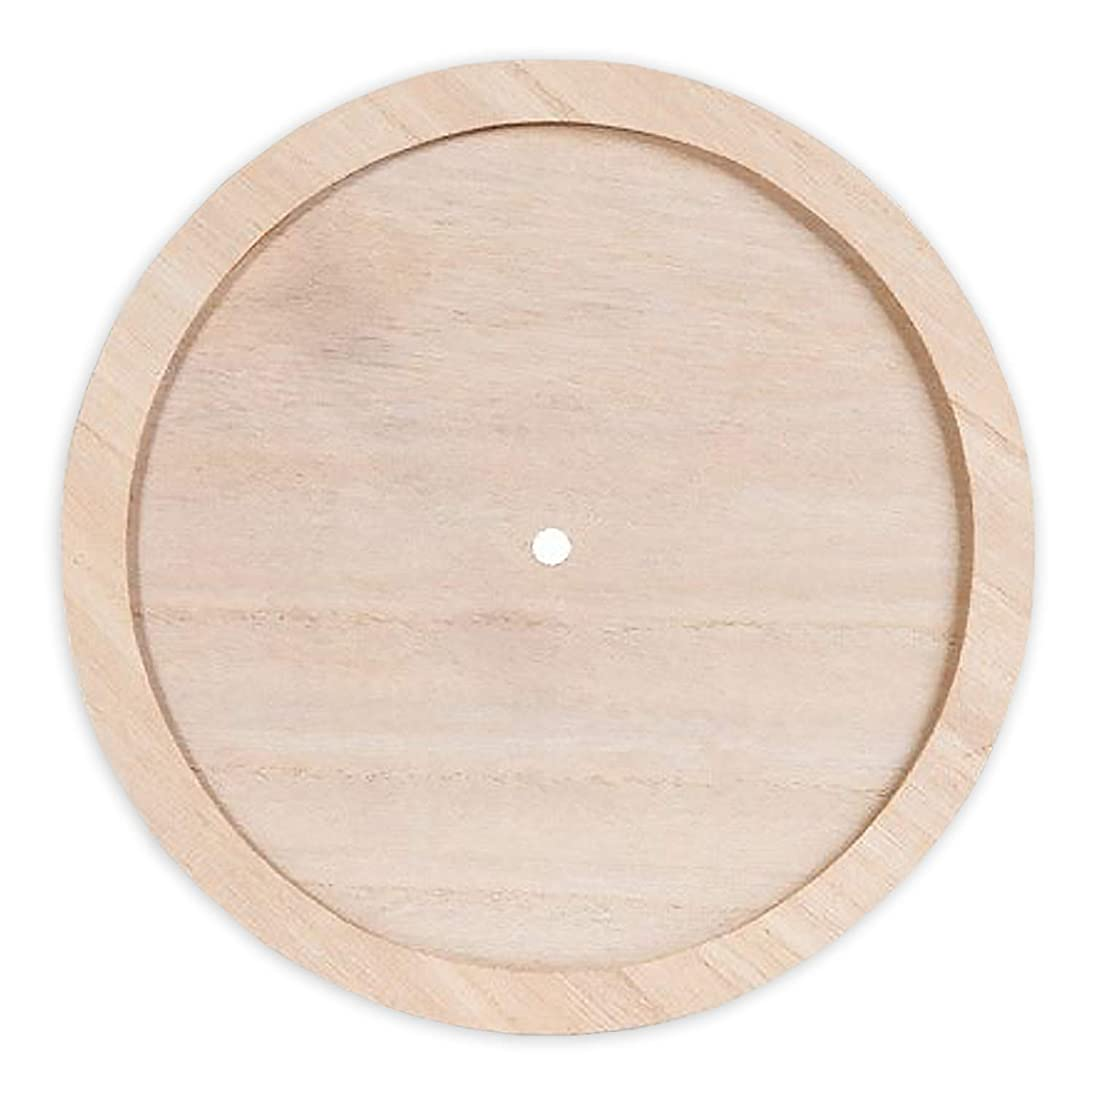 Unfinished Wood Crafts - Round Wooden Clock to Decorate, Paint, Embellish (3 Pack)